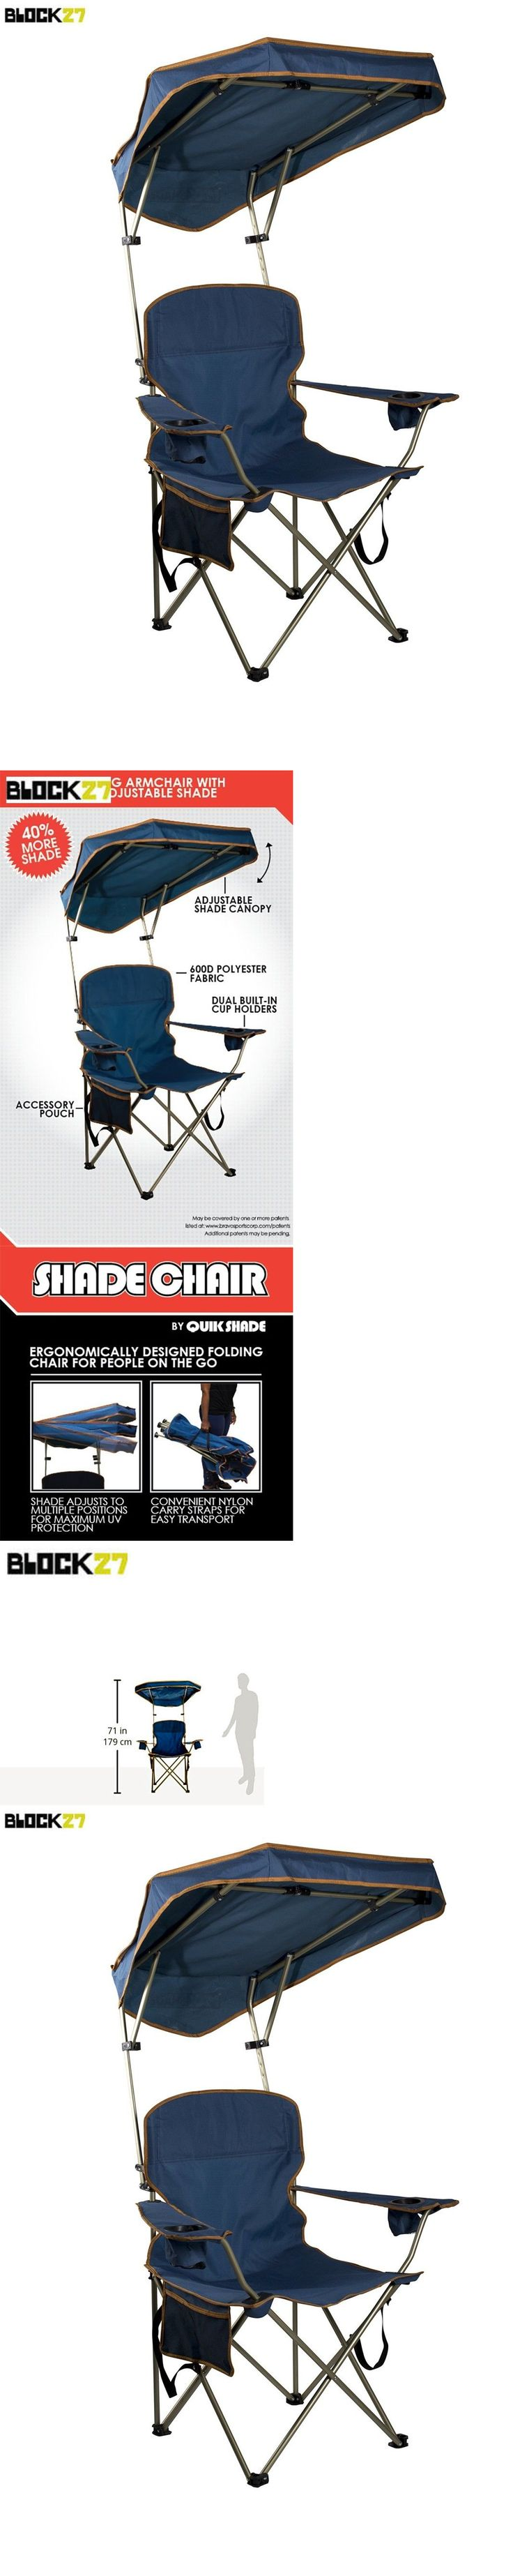 C&ing Furniture 16038 Folding Portable Chair With Sun Shade Canopy For Patio Outdoor Beach C&ing  sc 1 st  Pinterest & 34 best Kelsyus Chairs images on Pinterest | Camping chairs Kids ...